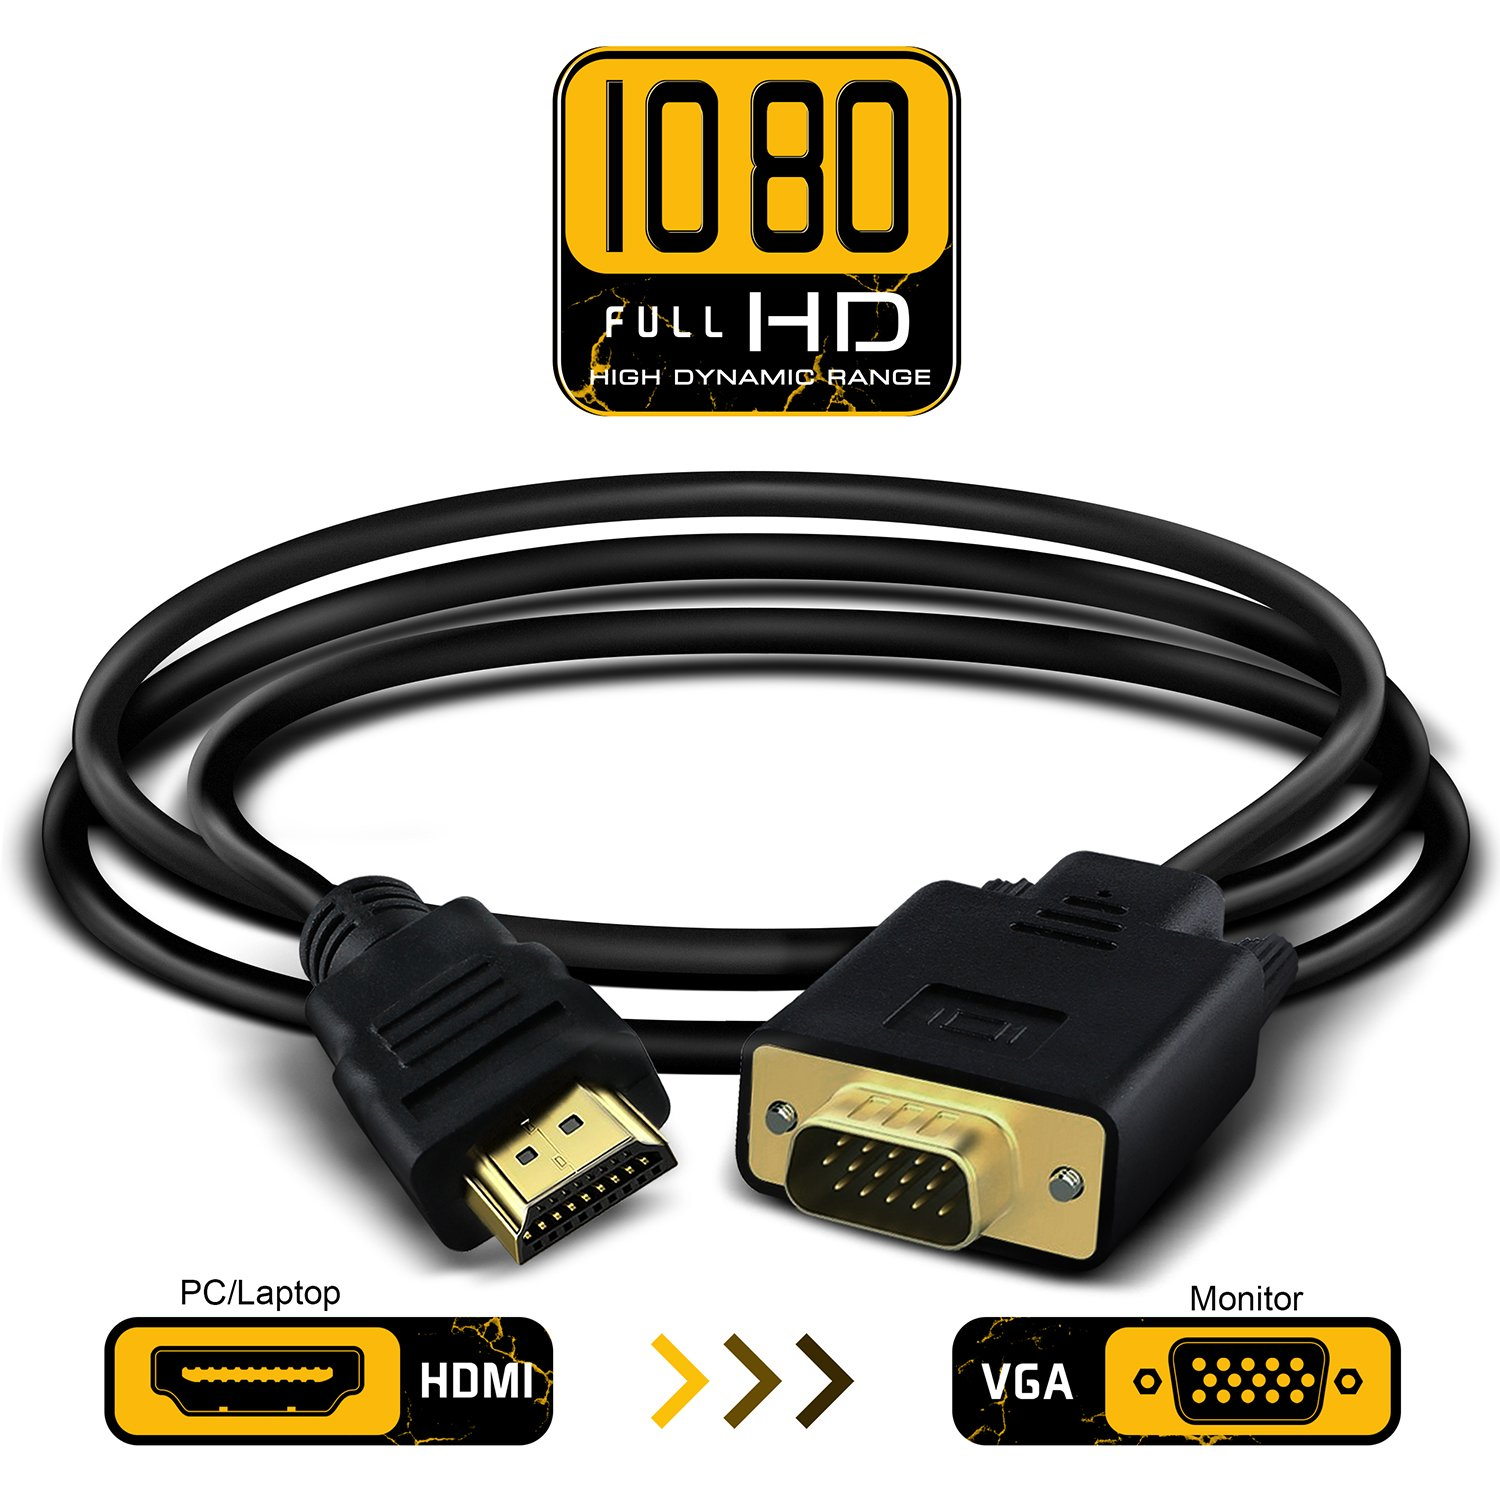 Full 1080p HDMI to VGA Video Converter Adapter Cable Male to Male D-SUB 15 Pin M/M Full 1080P with 3.5mm Audio Output One-way Signal Converter-1.8m/6ft Loopelectronic LOhdmi20161107